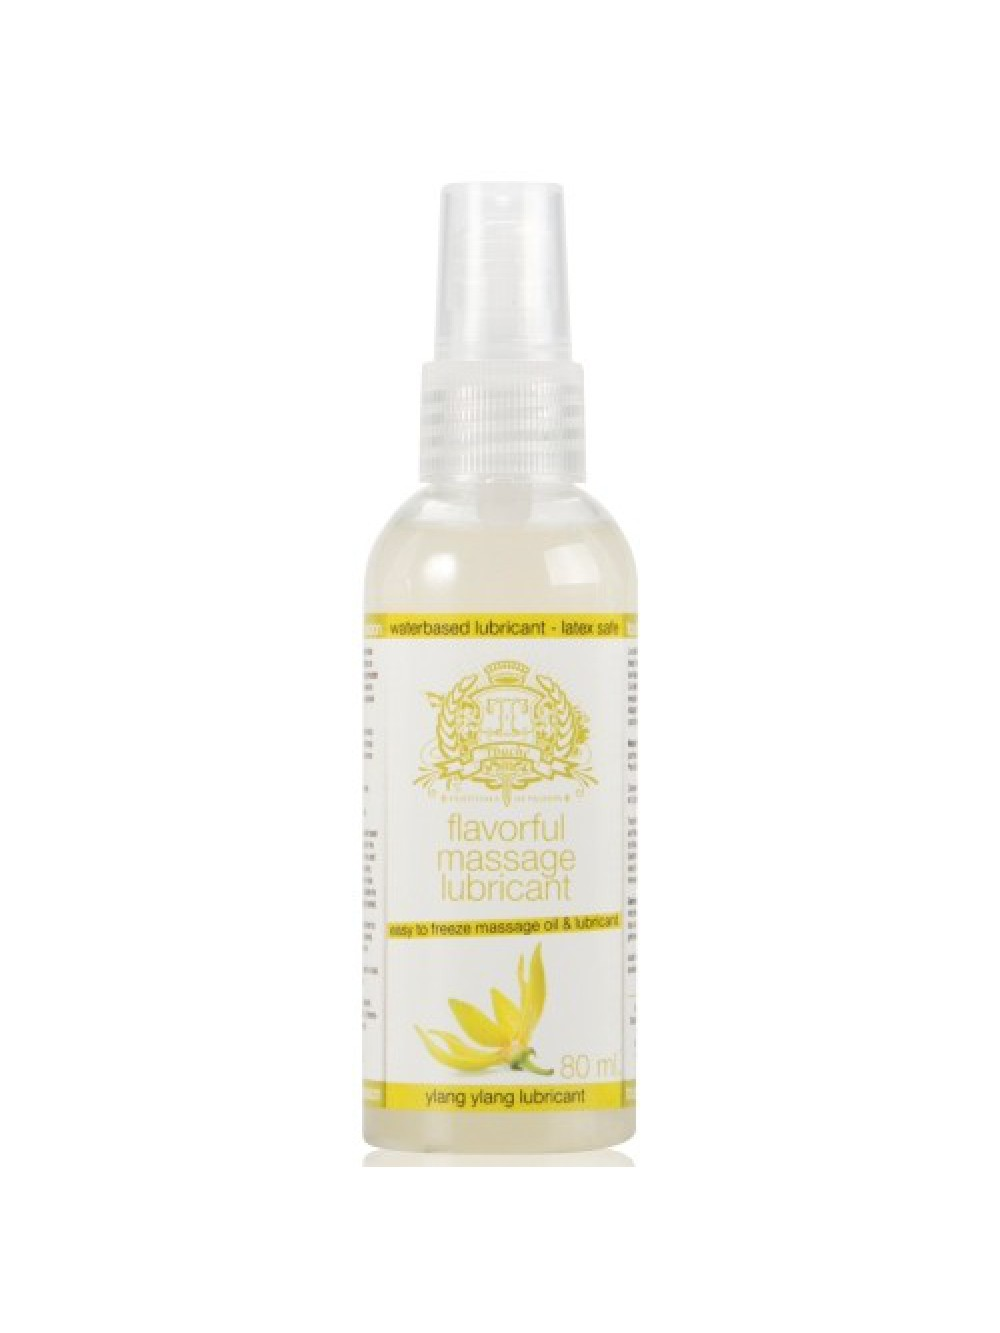 TOUCHE ICE YLANG YLANG LUBRICANT AND MASSAGE OIL 80ML